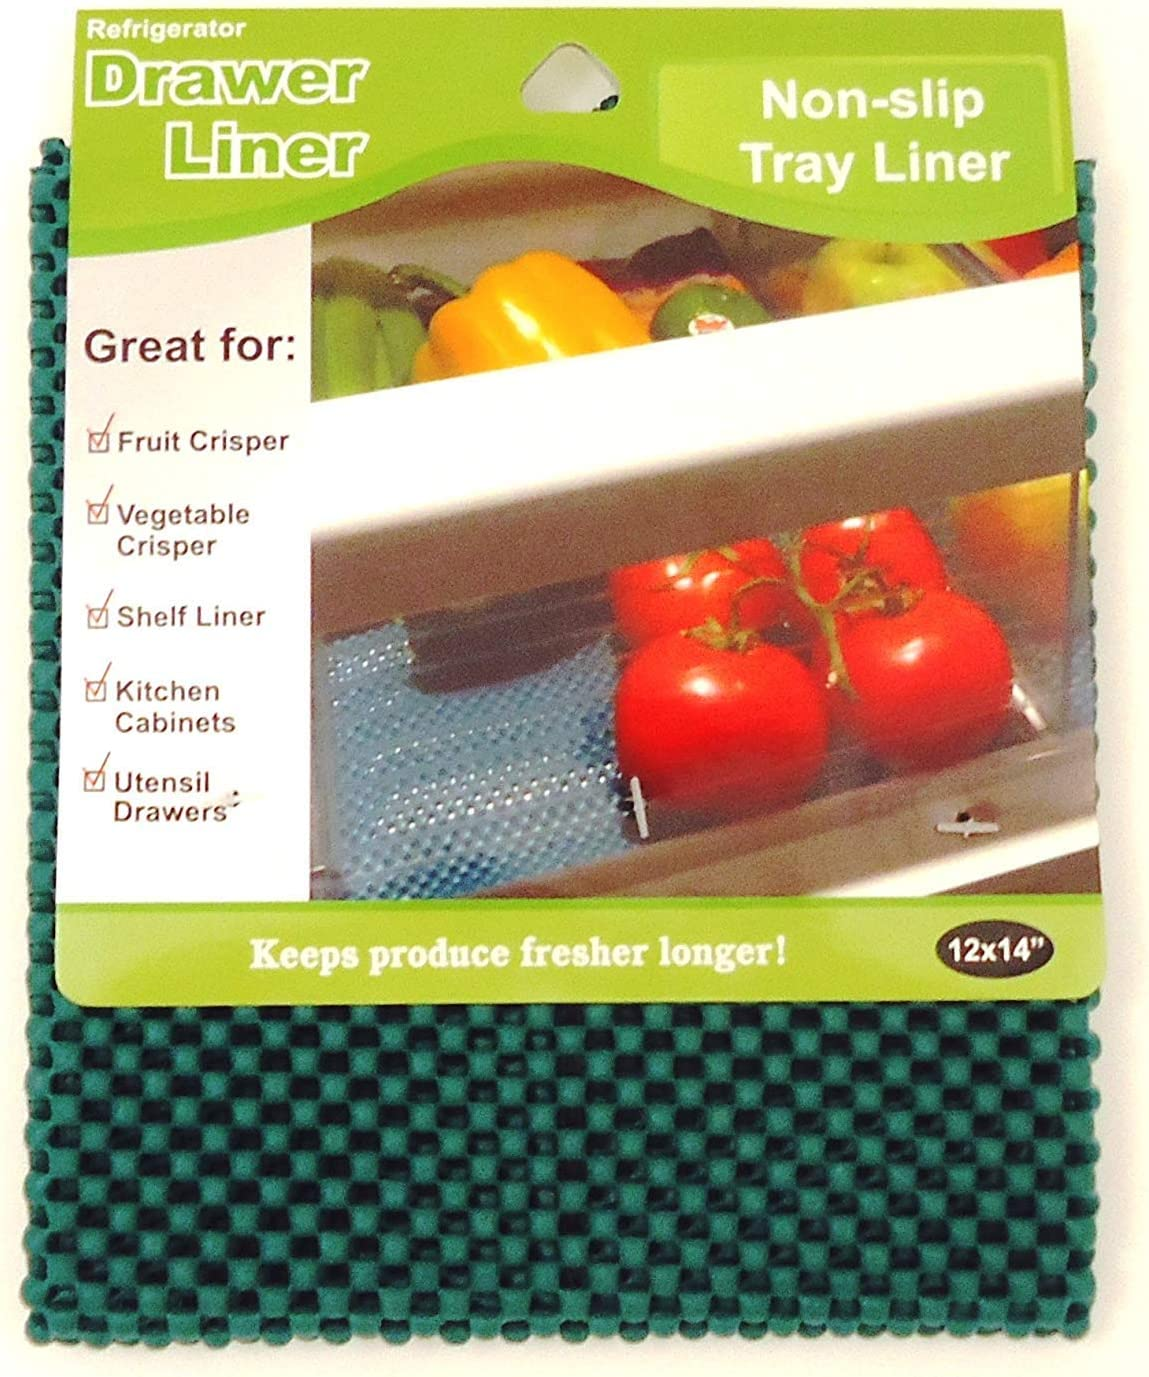 LaMi Products INC Economy Kitchen Non Slip Accessory, Refrigerator Drawer Liner - 2 Pack